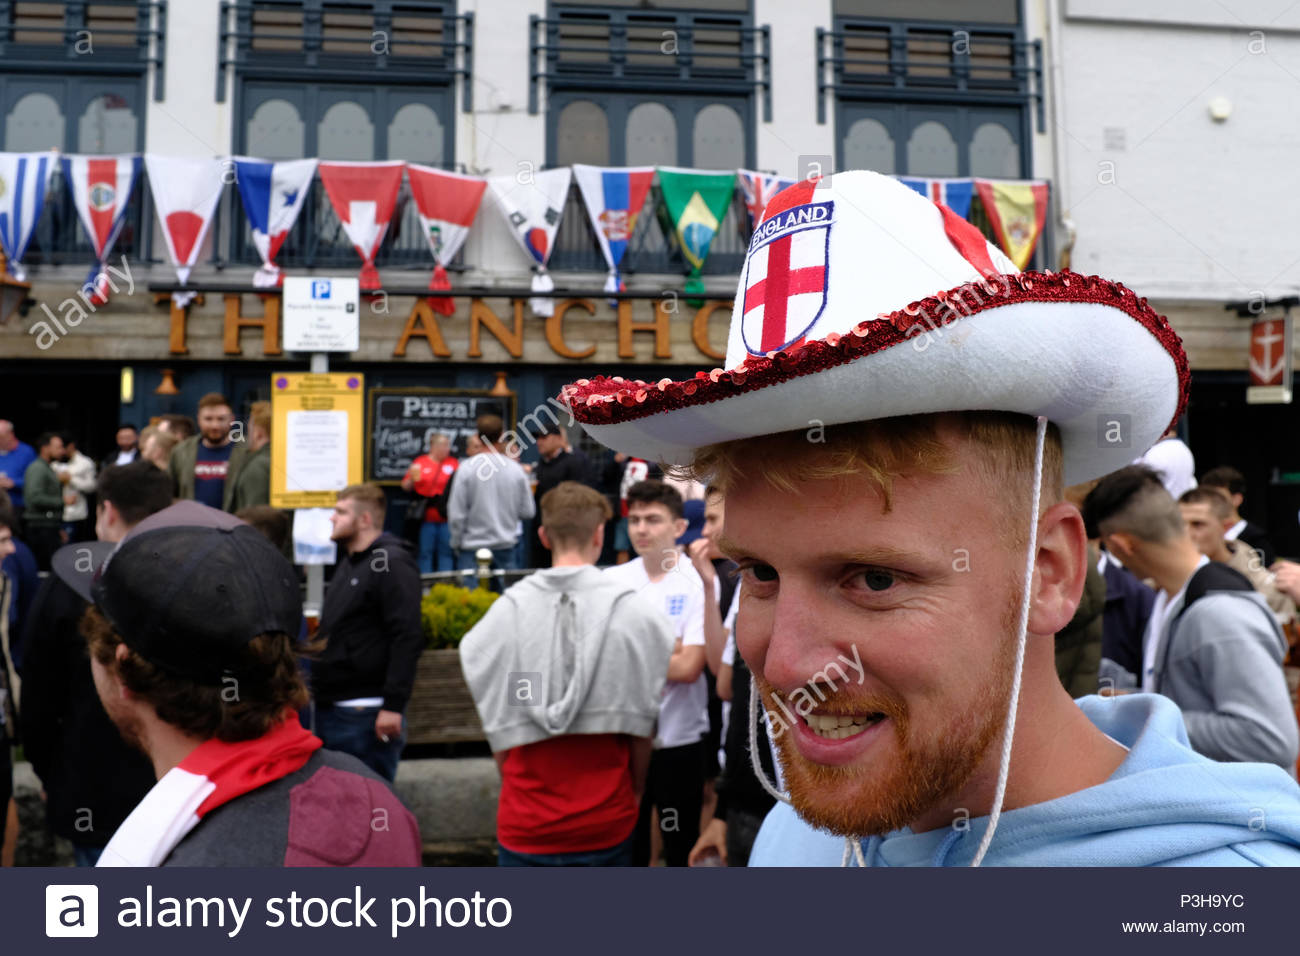 Weymouth, UK. 18th June, 2018. World Cup England supporter with England Cowboy Hat at outdoor screening at Weymouth quayside. Credit: SI JUBB/Alamy Live News - Stock Image